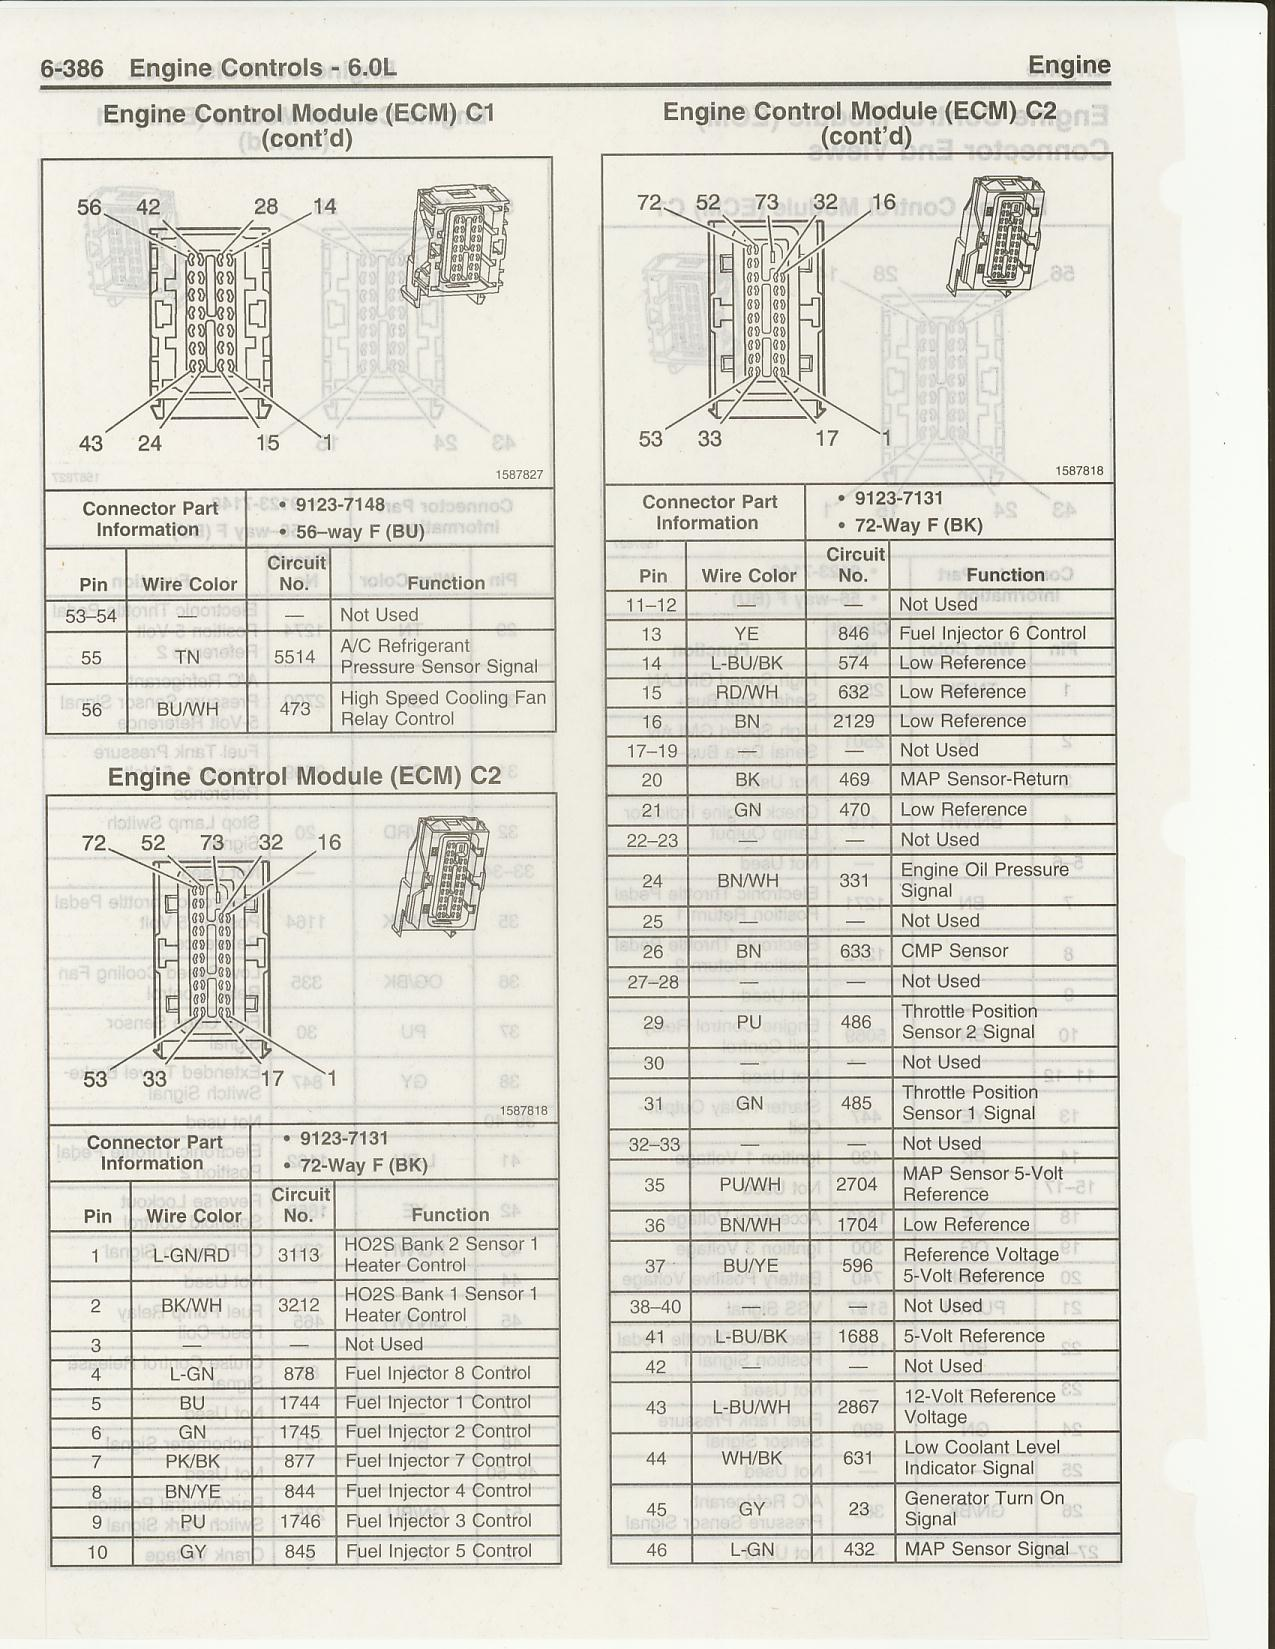 Pinouts And Wiring Diagrams Page 4 Ls1tech Camaro Firebird Ecu Harness Ls2 C1 C2